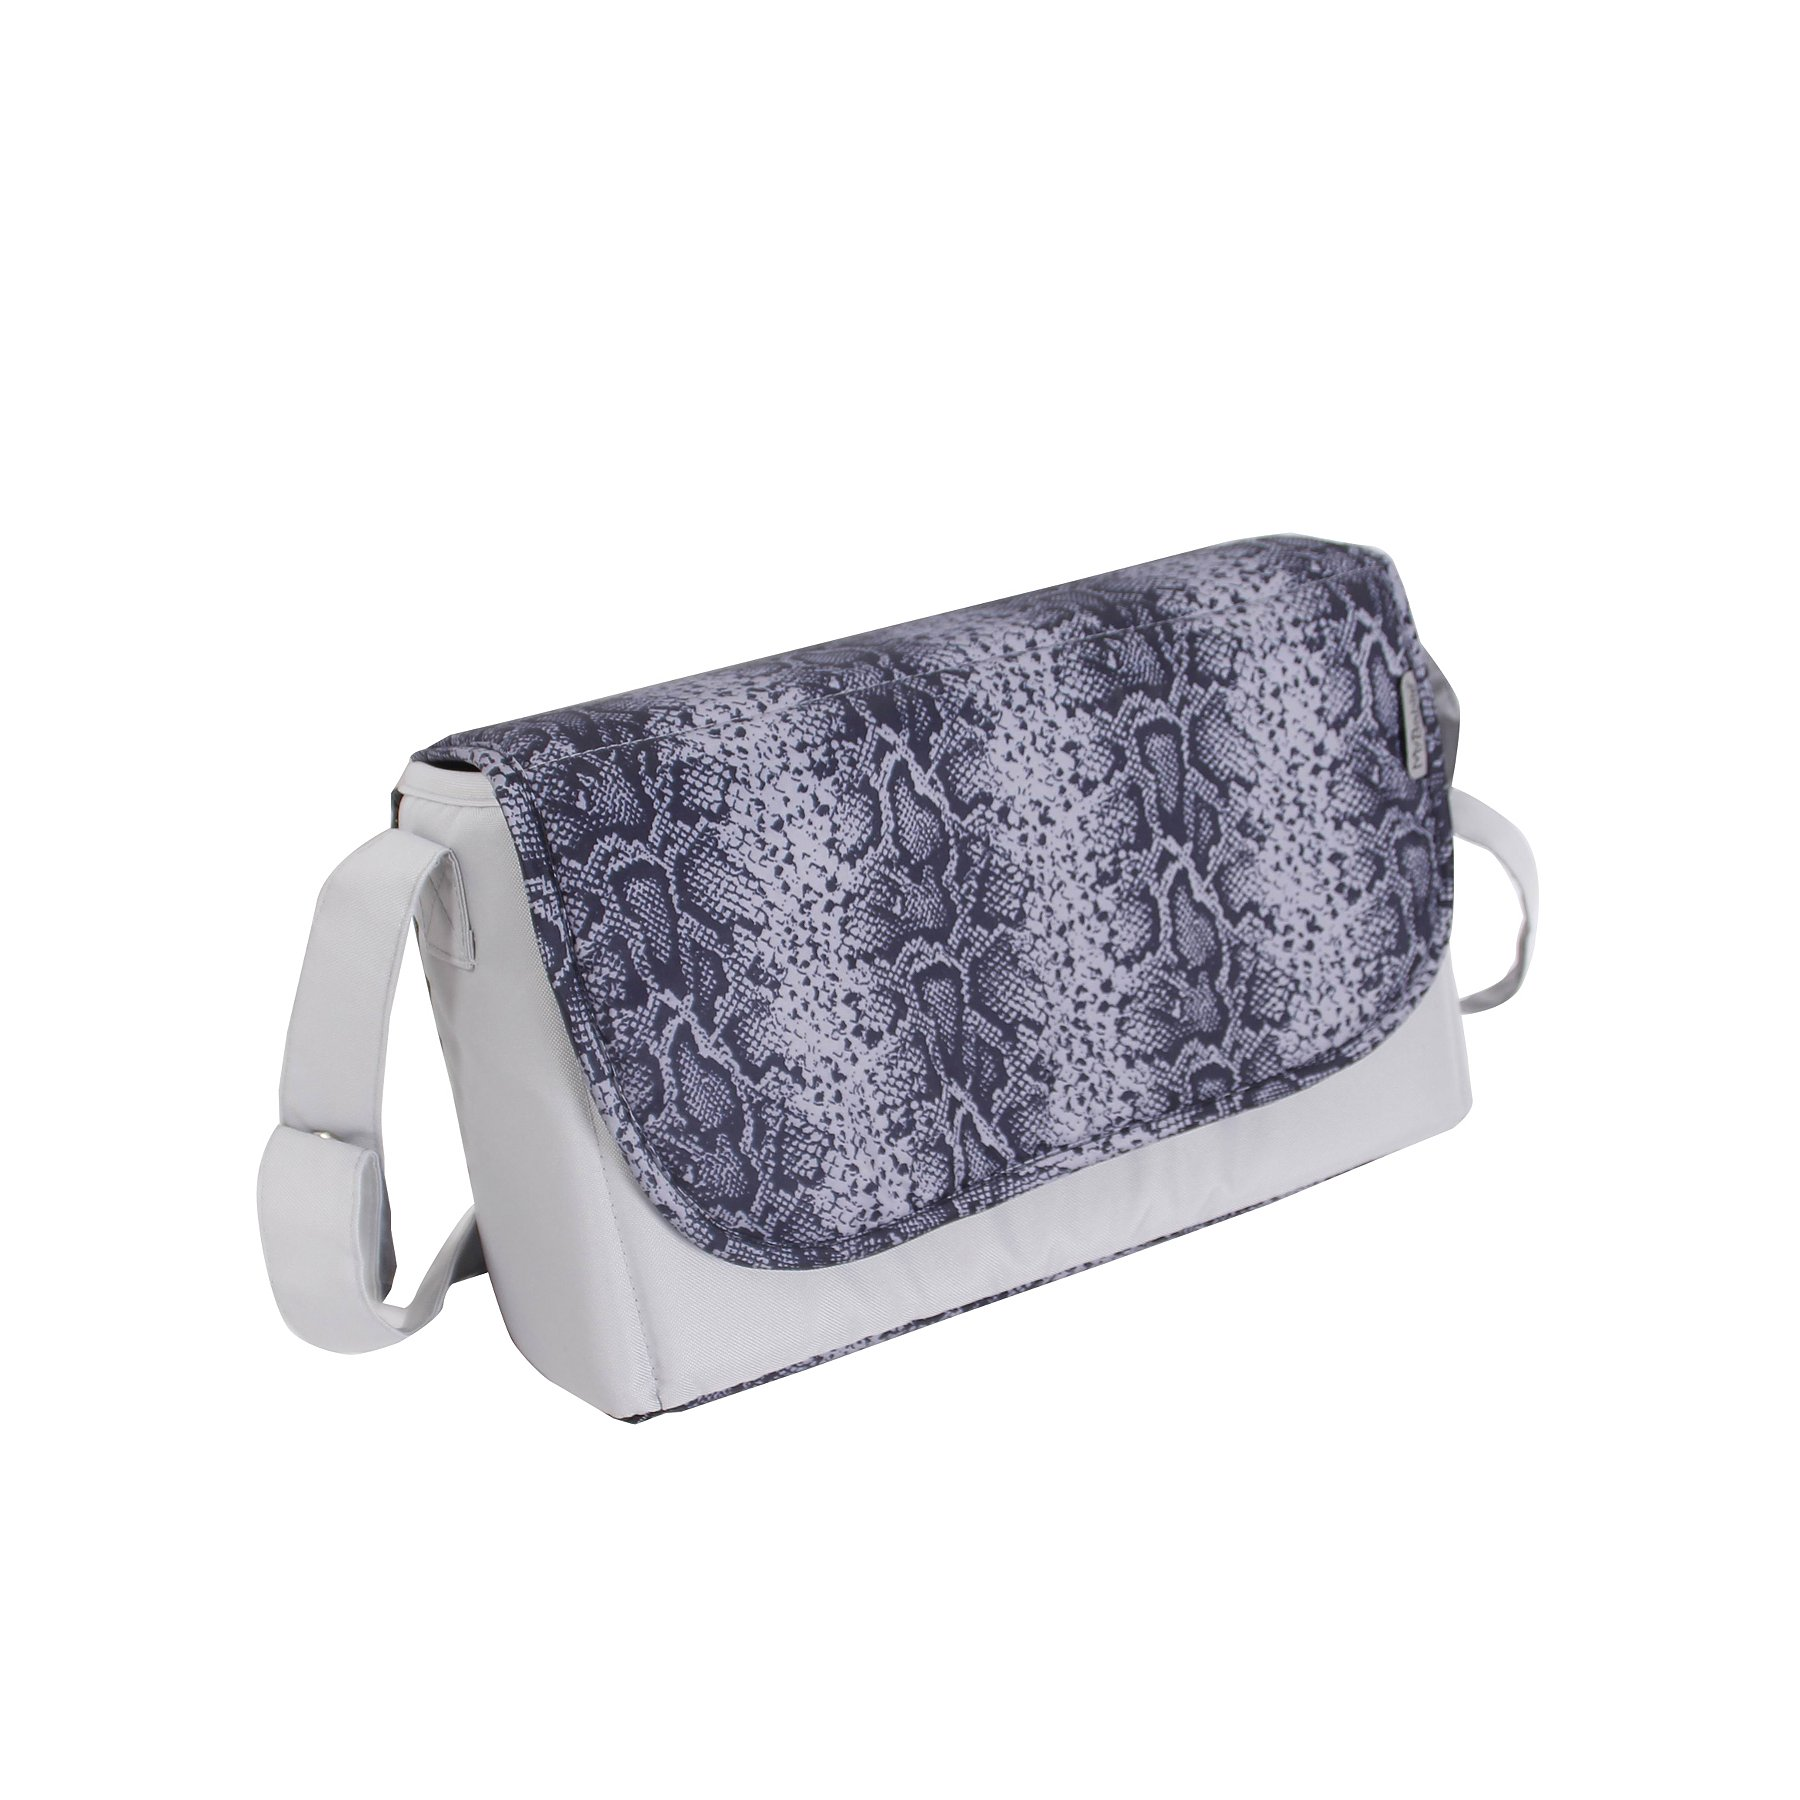 beaef47238fb My Babiie Dreamiie by Samantha Faiers Platinum Snake Baby Changing Bag.  Reset